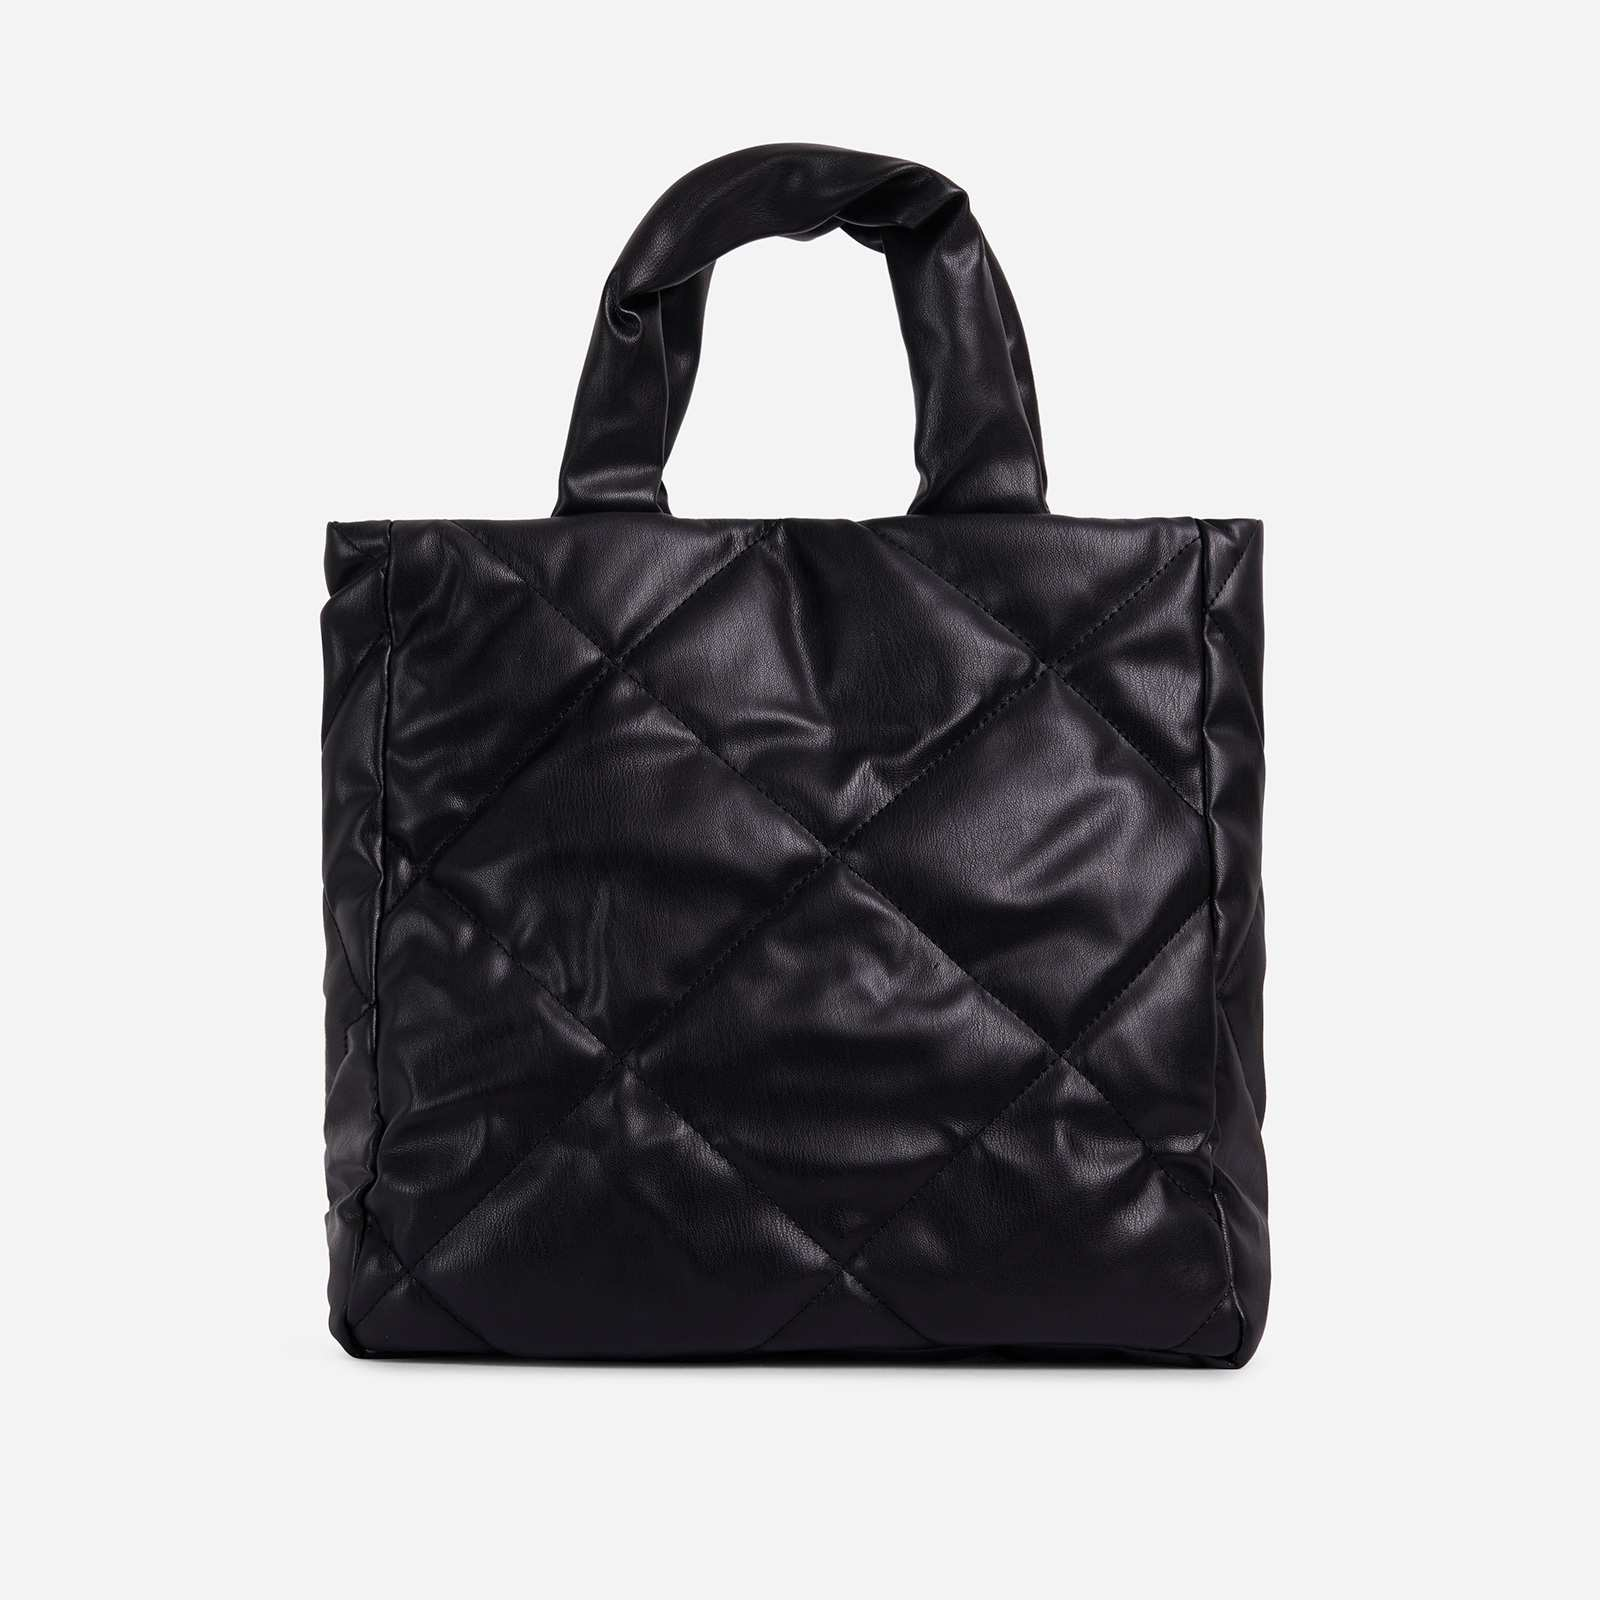 Fearn Large Quilted Tote Bag In Black Faux Leather